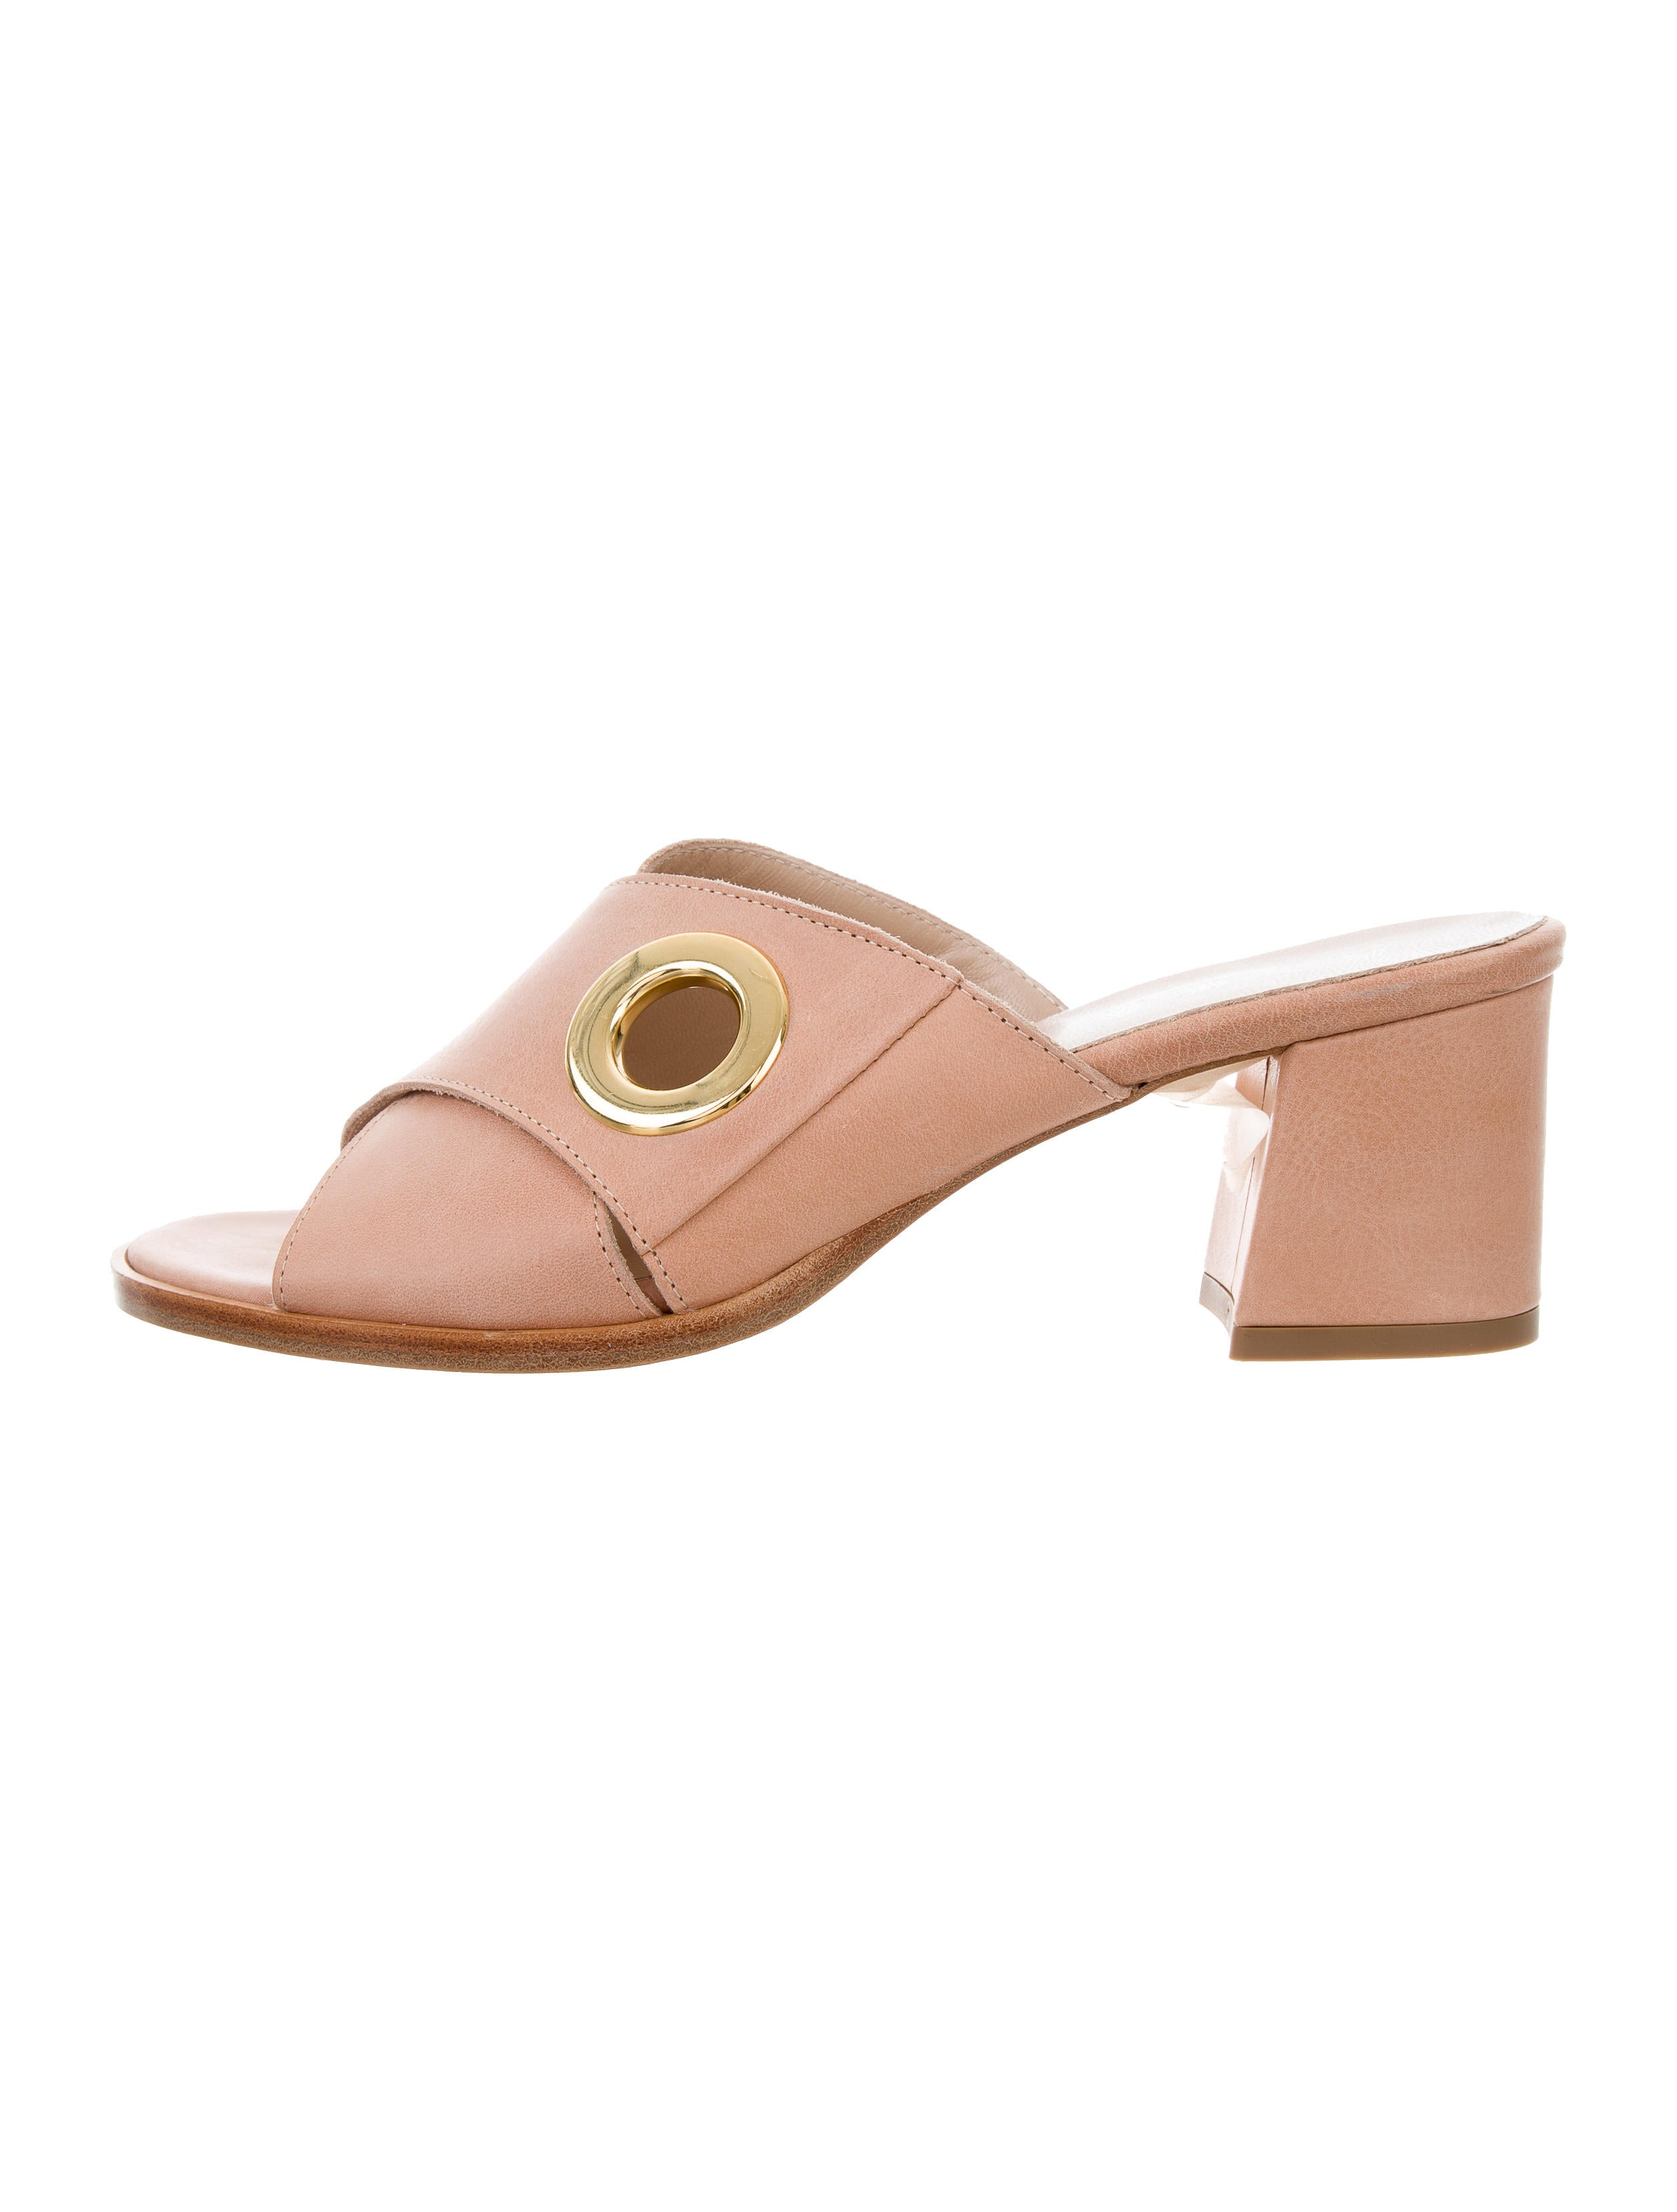 cheap sale 100% authentic Aska Belle Crossover Sandals free shipping perfect sale best store to get cheap sale extremely EaI0Fn5